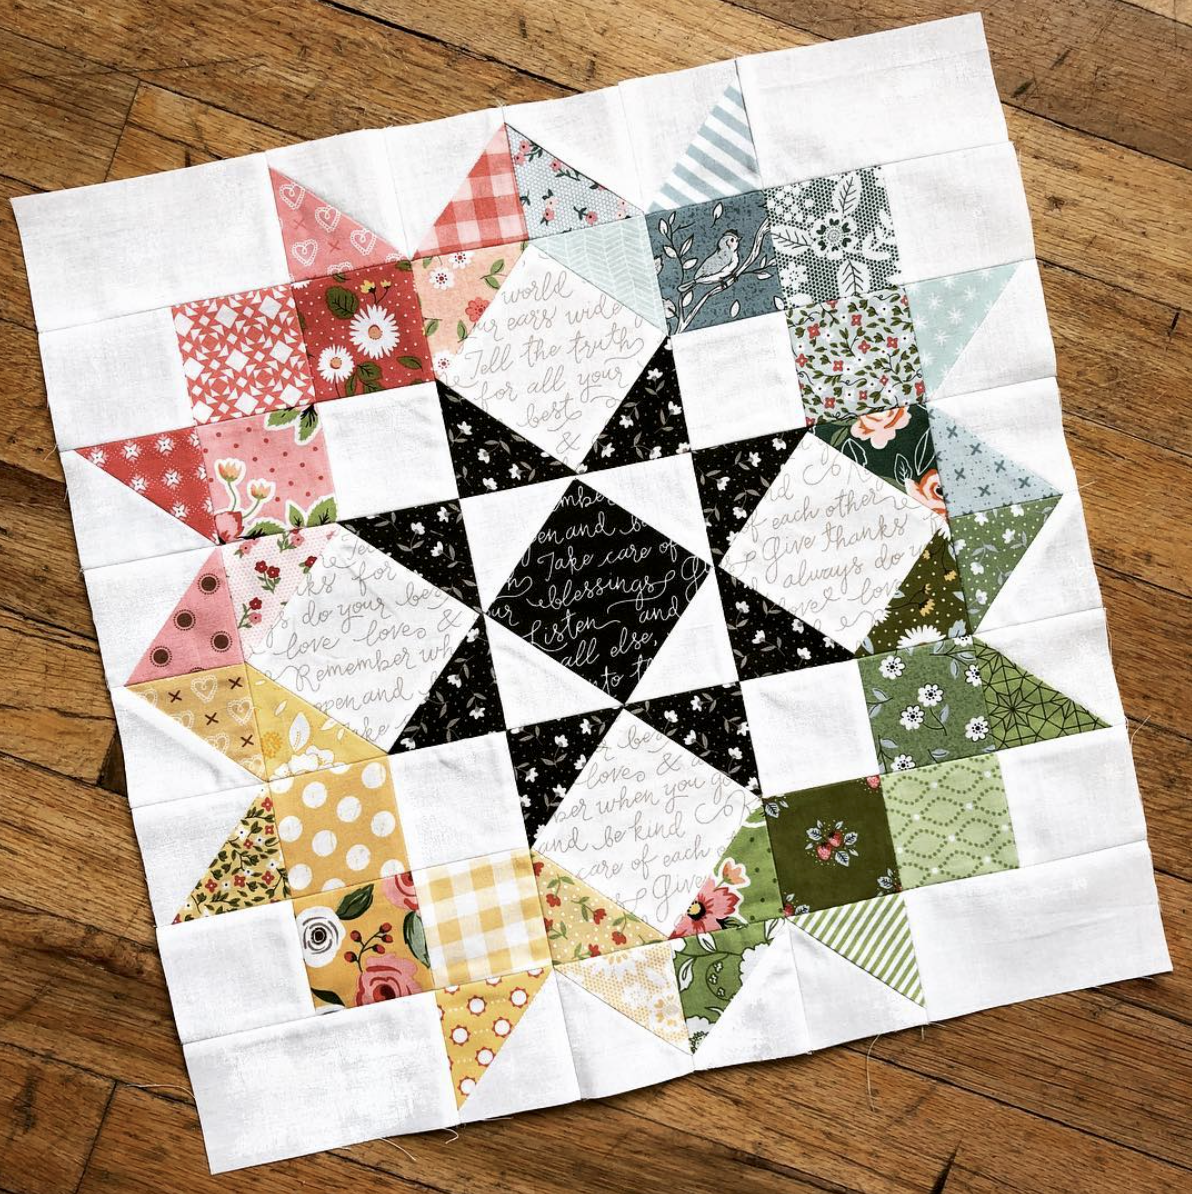 coloring pages quilt blocks | Barn quilt designs, Barn quilt ... | 1194x1192